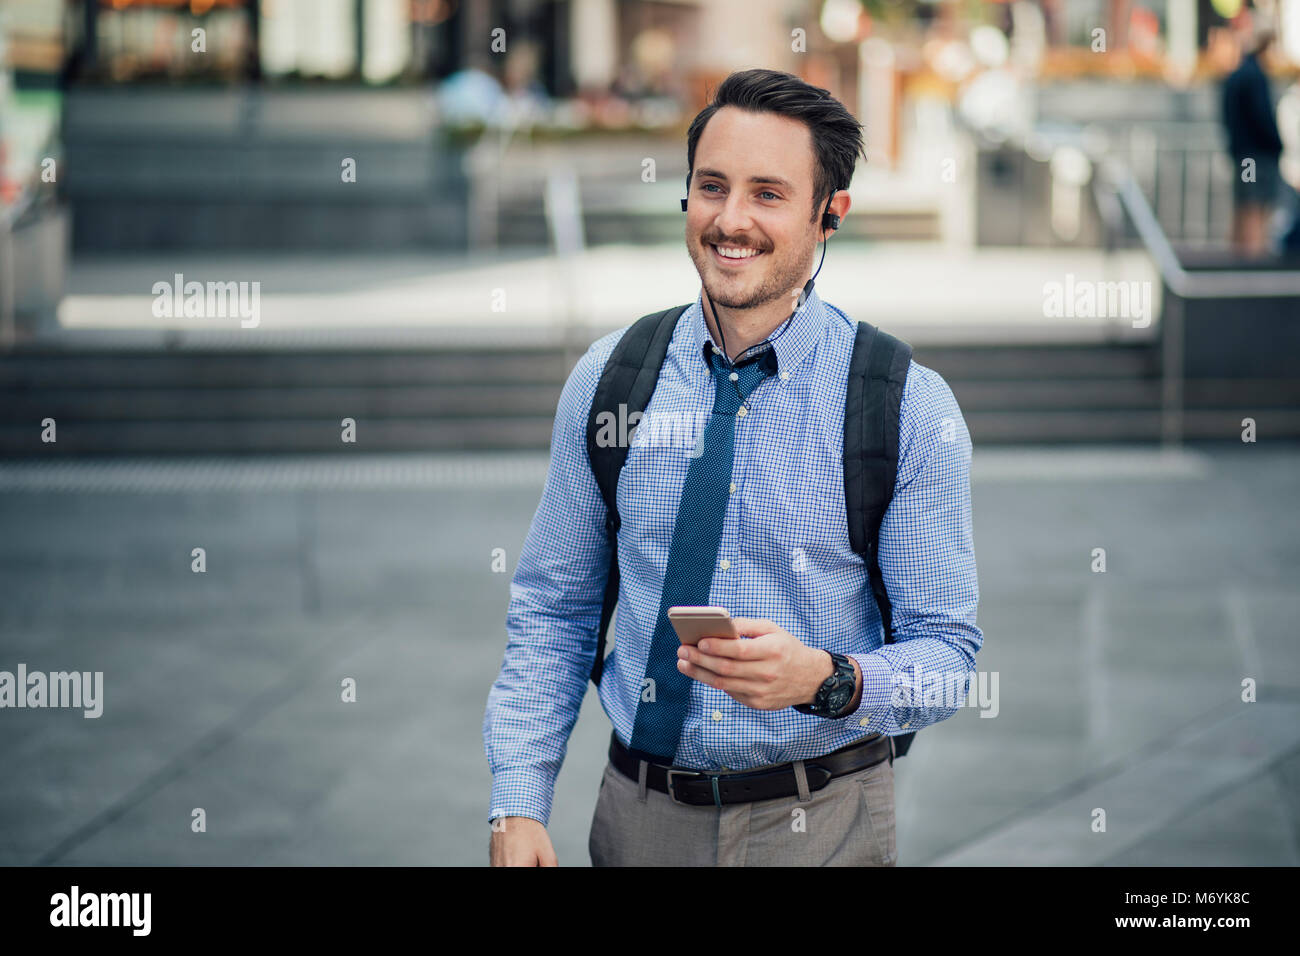 Happy millennial businessman is commuting in Melbourne, Victoria with a smartphone, listening to music through his - Stock Image